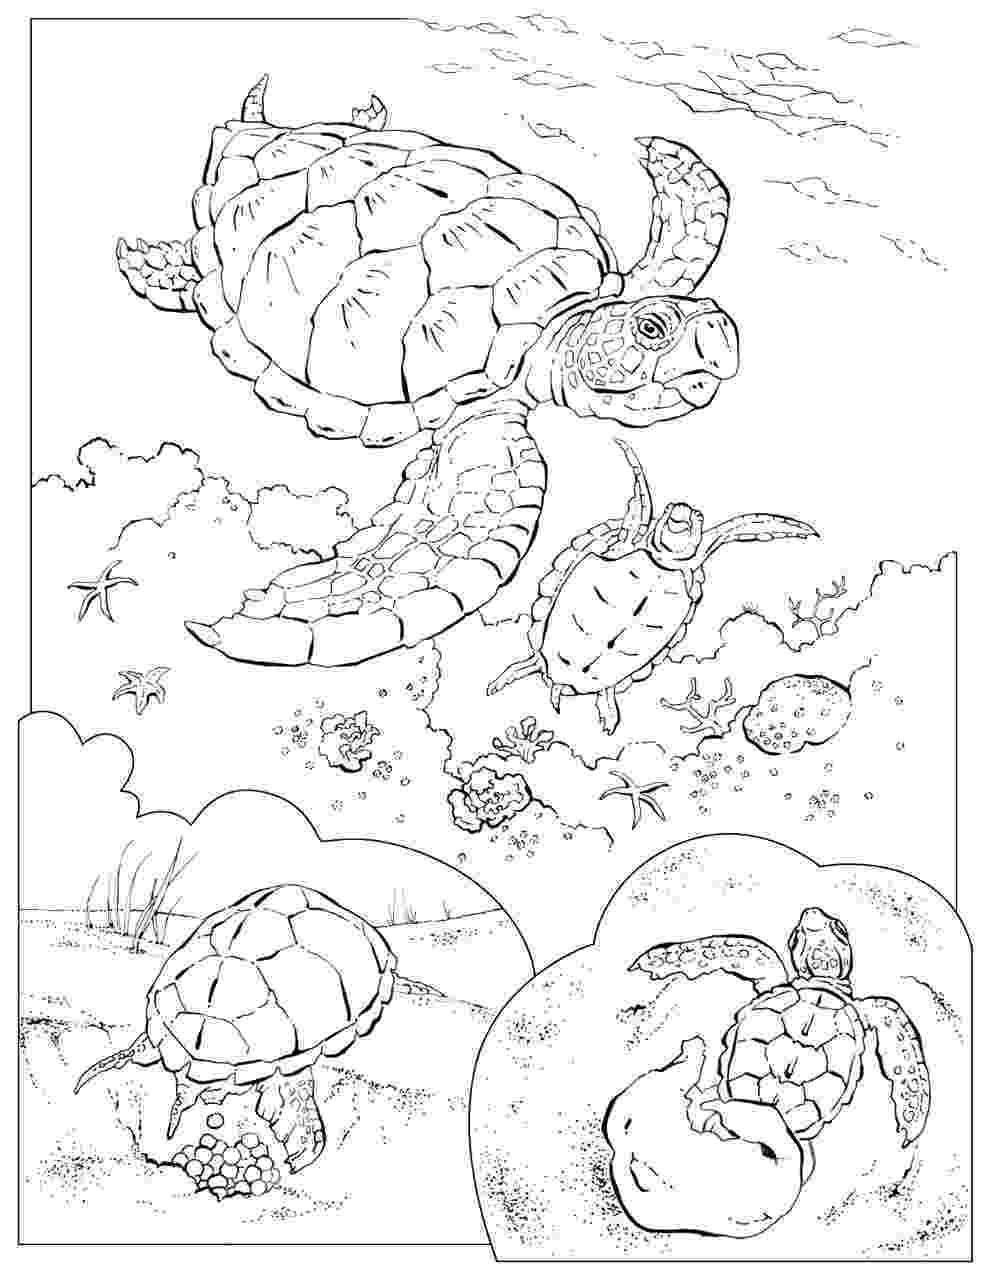 animal coloring pages national geographic coloring book animals a to i doodles penguin pages national coloring geographic animal